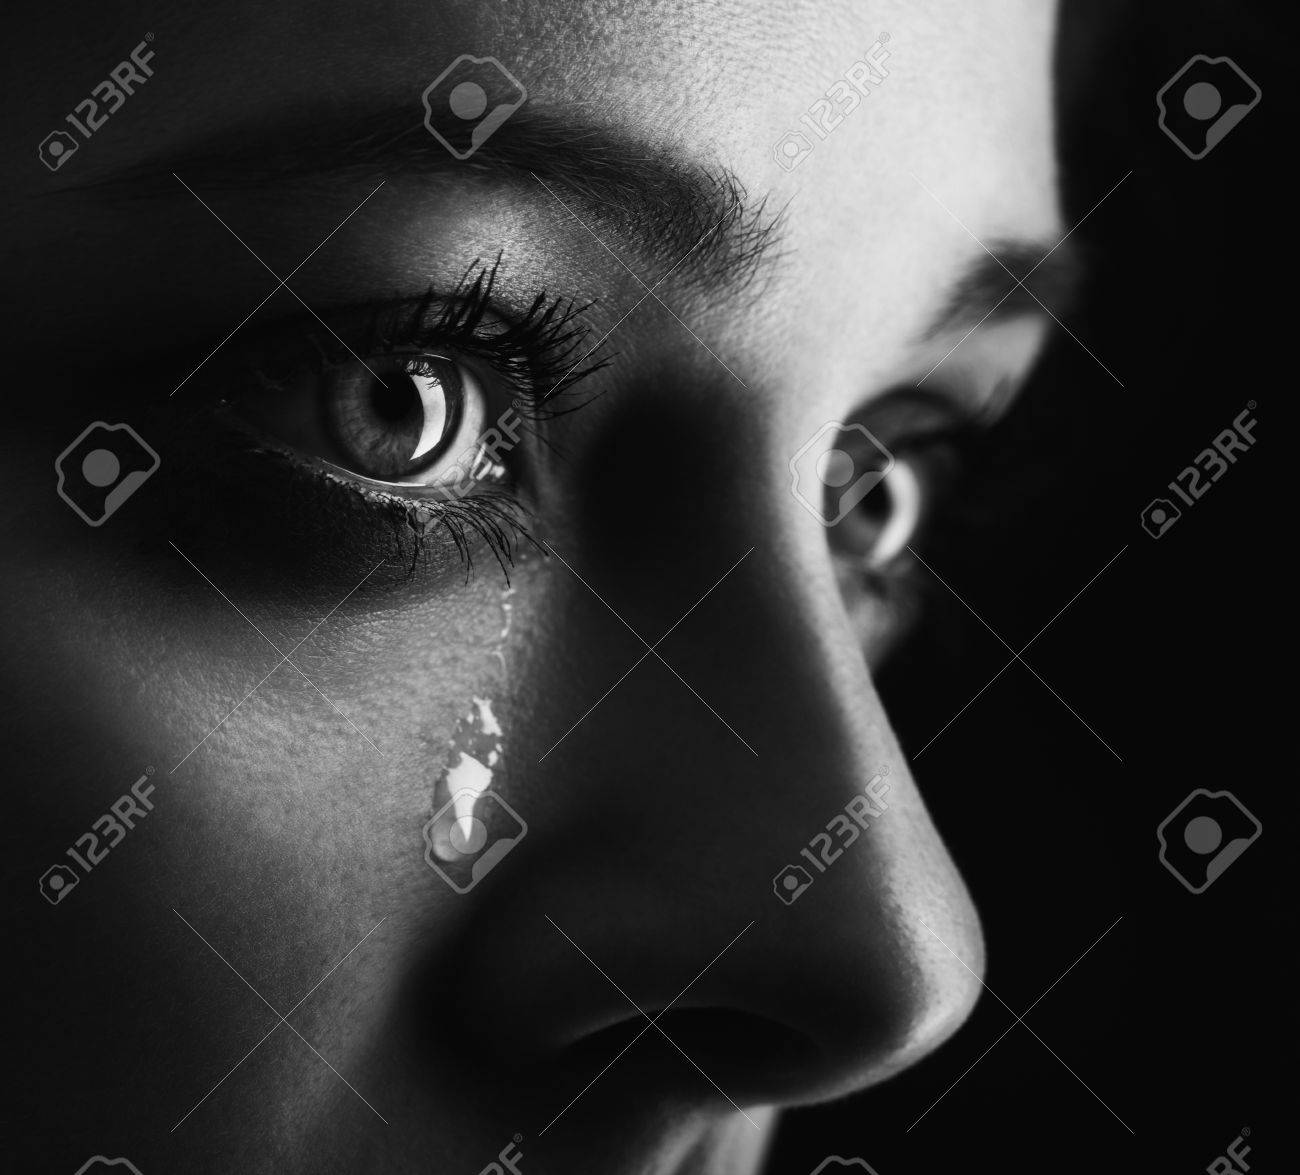 beauty girl cry on black background (height contrast film monochrom edit) - 58843714